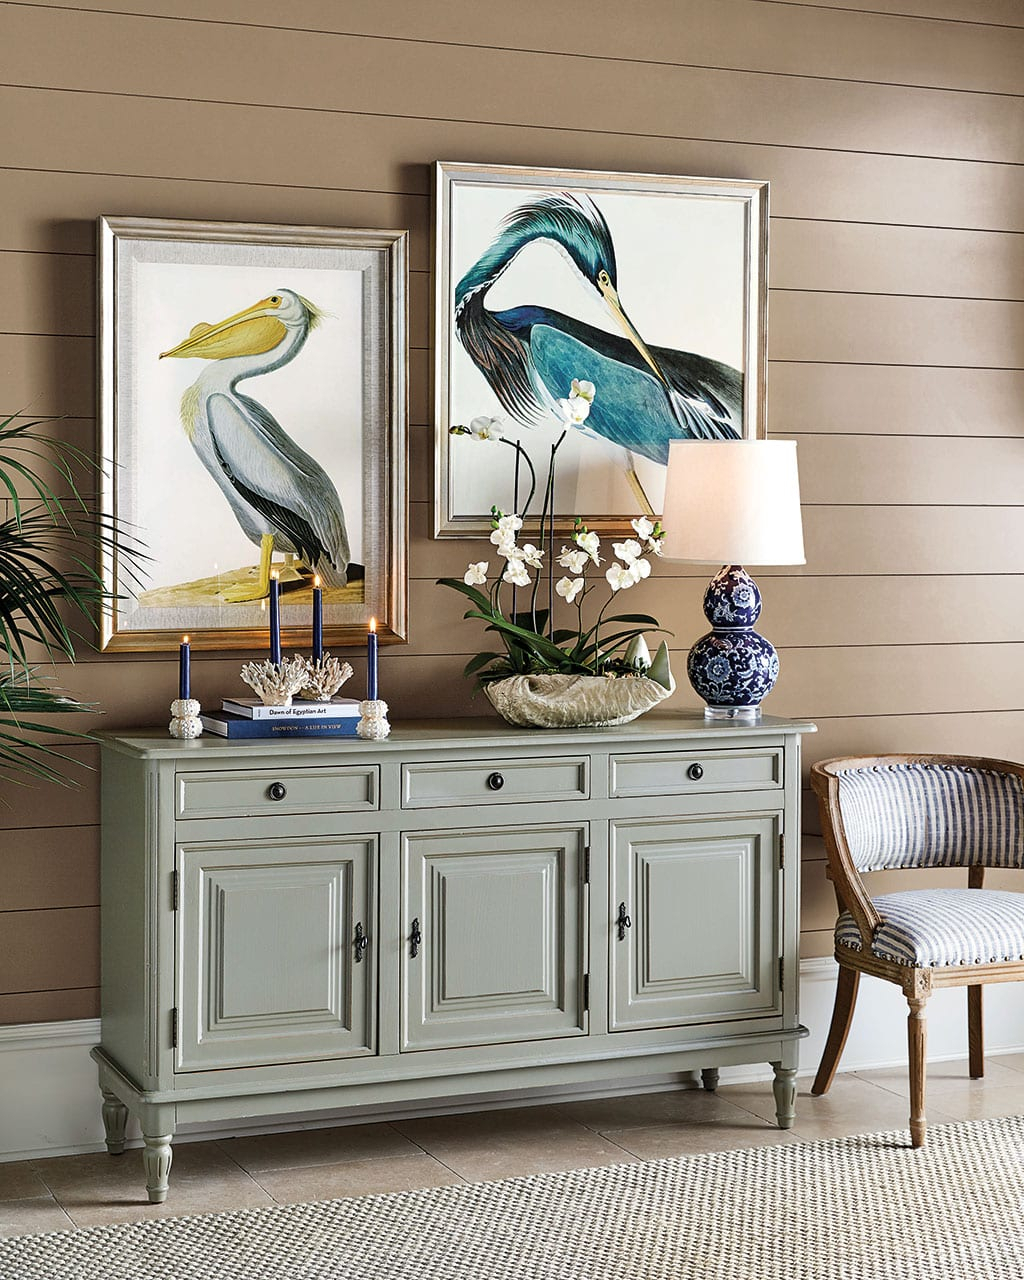 Hanging Wall Art Complete Guide | How To Decorate with 4 Piece Metal Wall Decor Sets (Image 14 of 30)